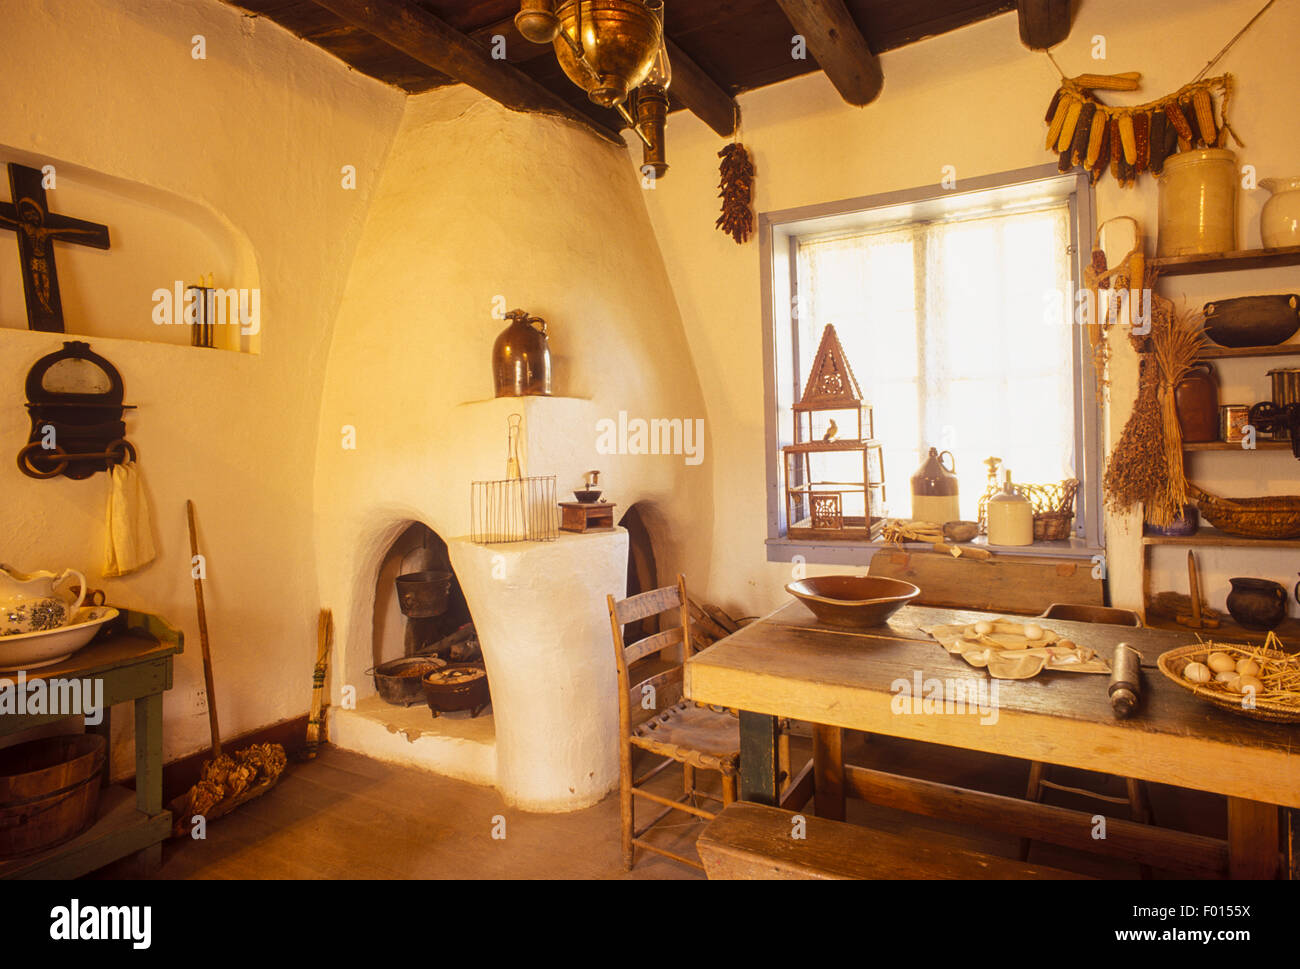 New mexico taos county carson - Kitchen Kit Carson House Taos New Mexico Stock Image